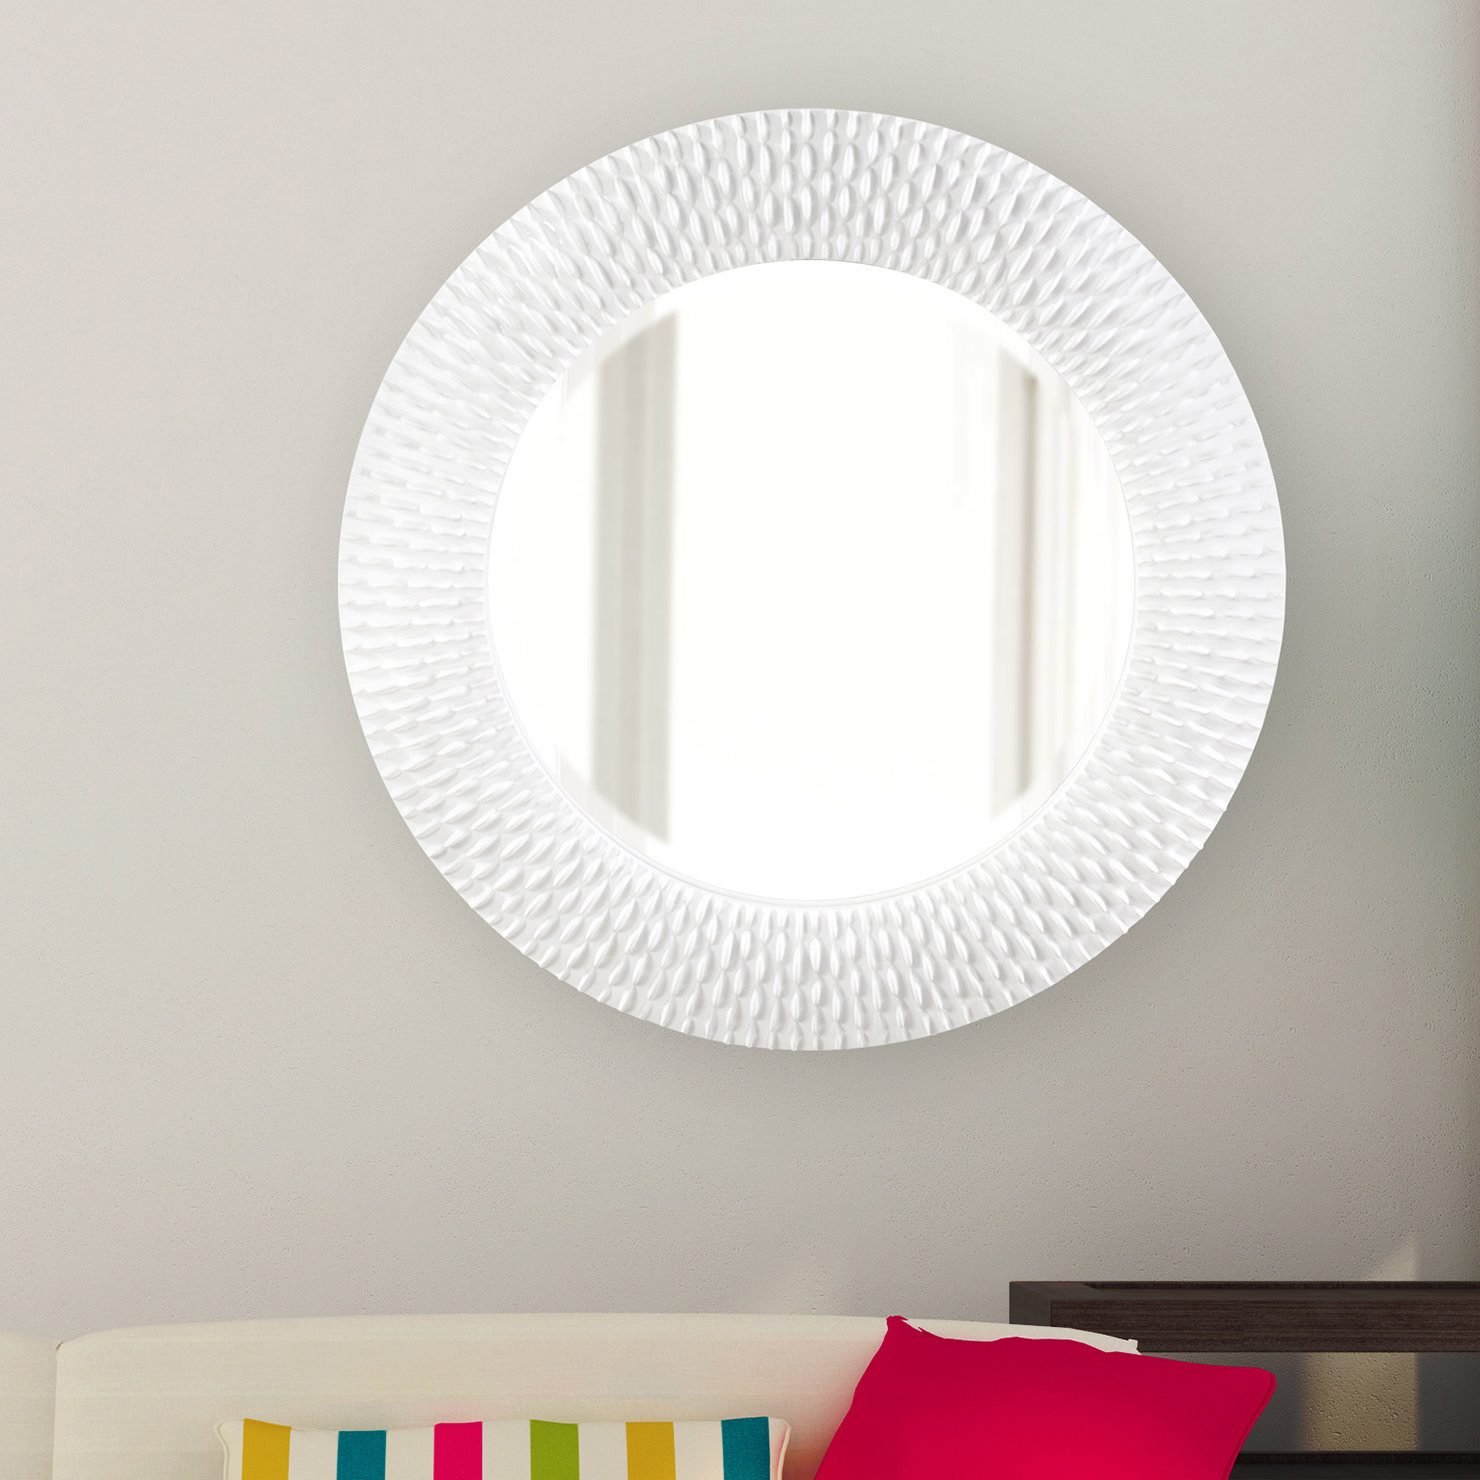 Famous High End Wall Mirrors Pertaining To Hengelo Wall Mirror (View 9 of 20)